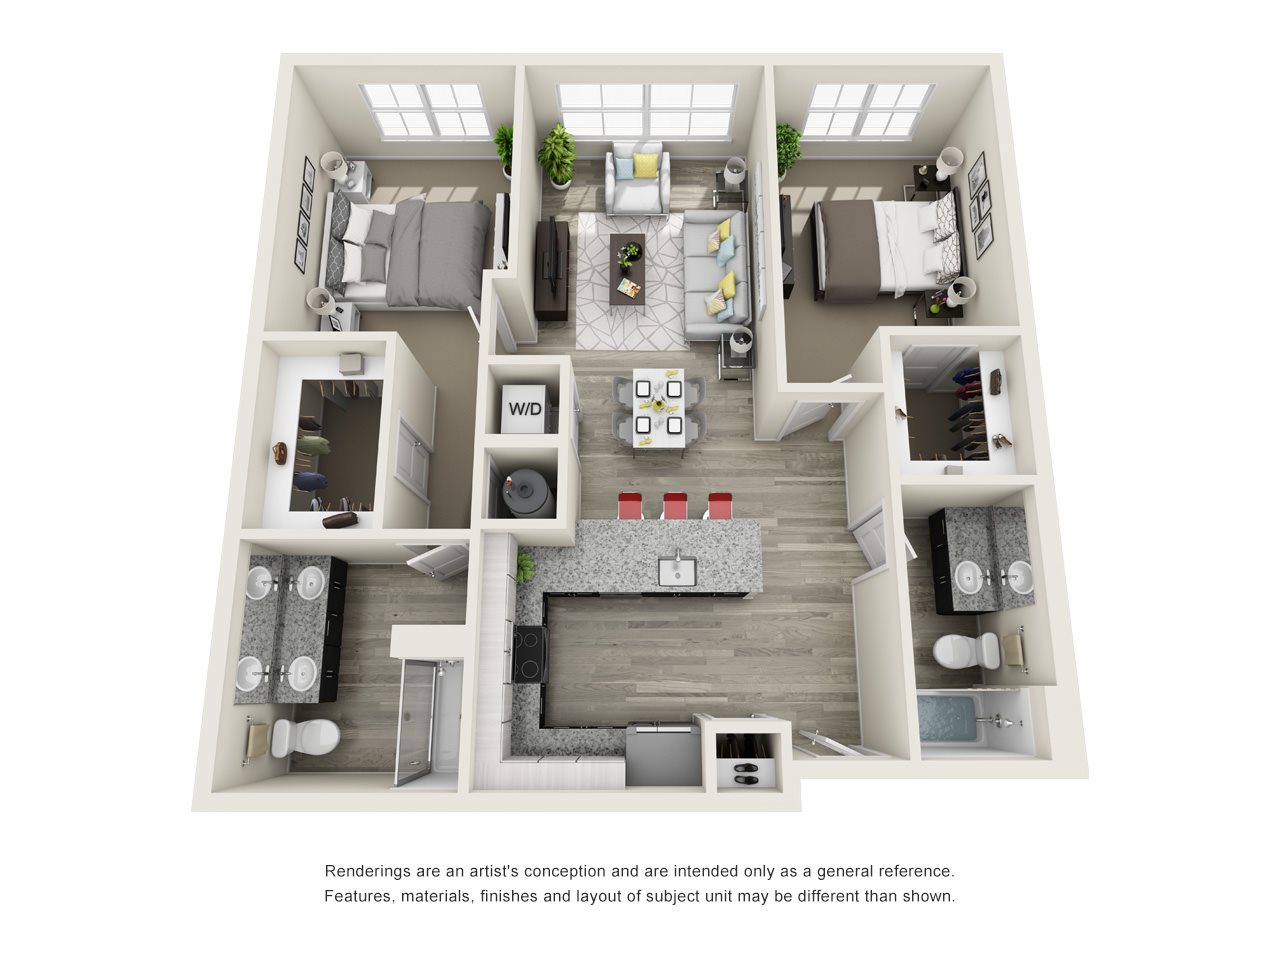 2 Bedroom, 2 Bath 1074 sqft Hc Floor Plan 14